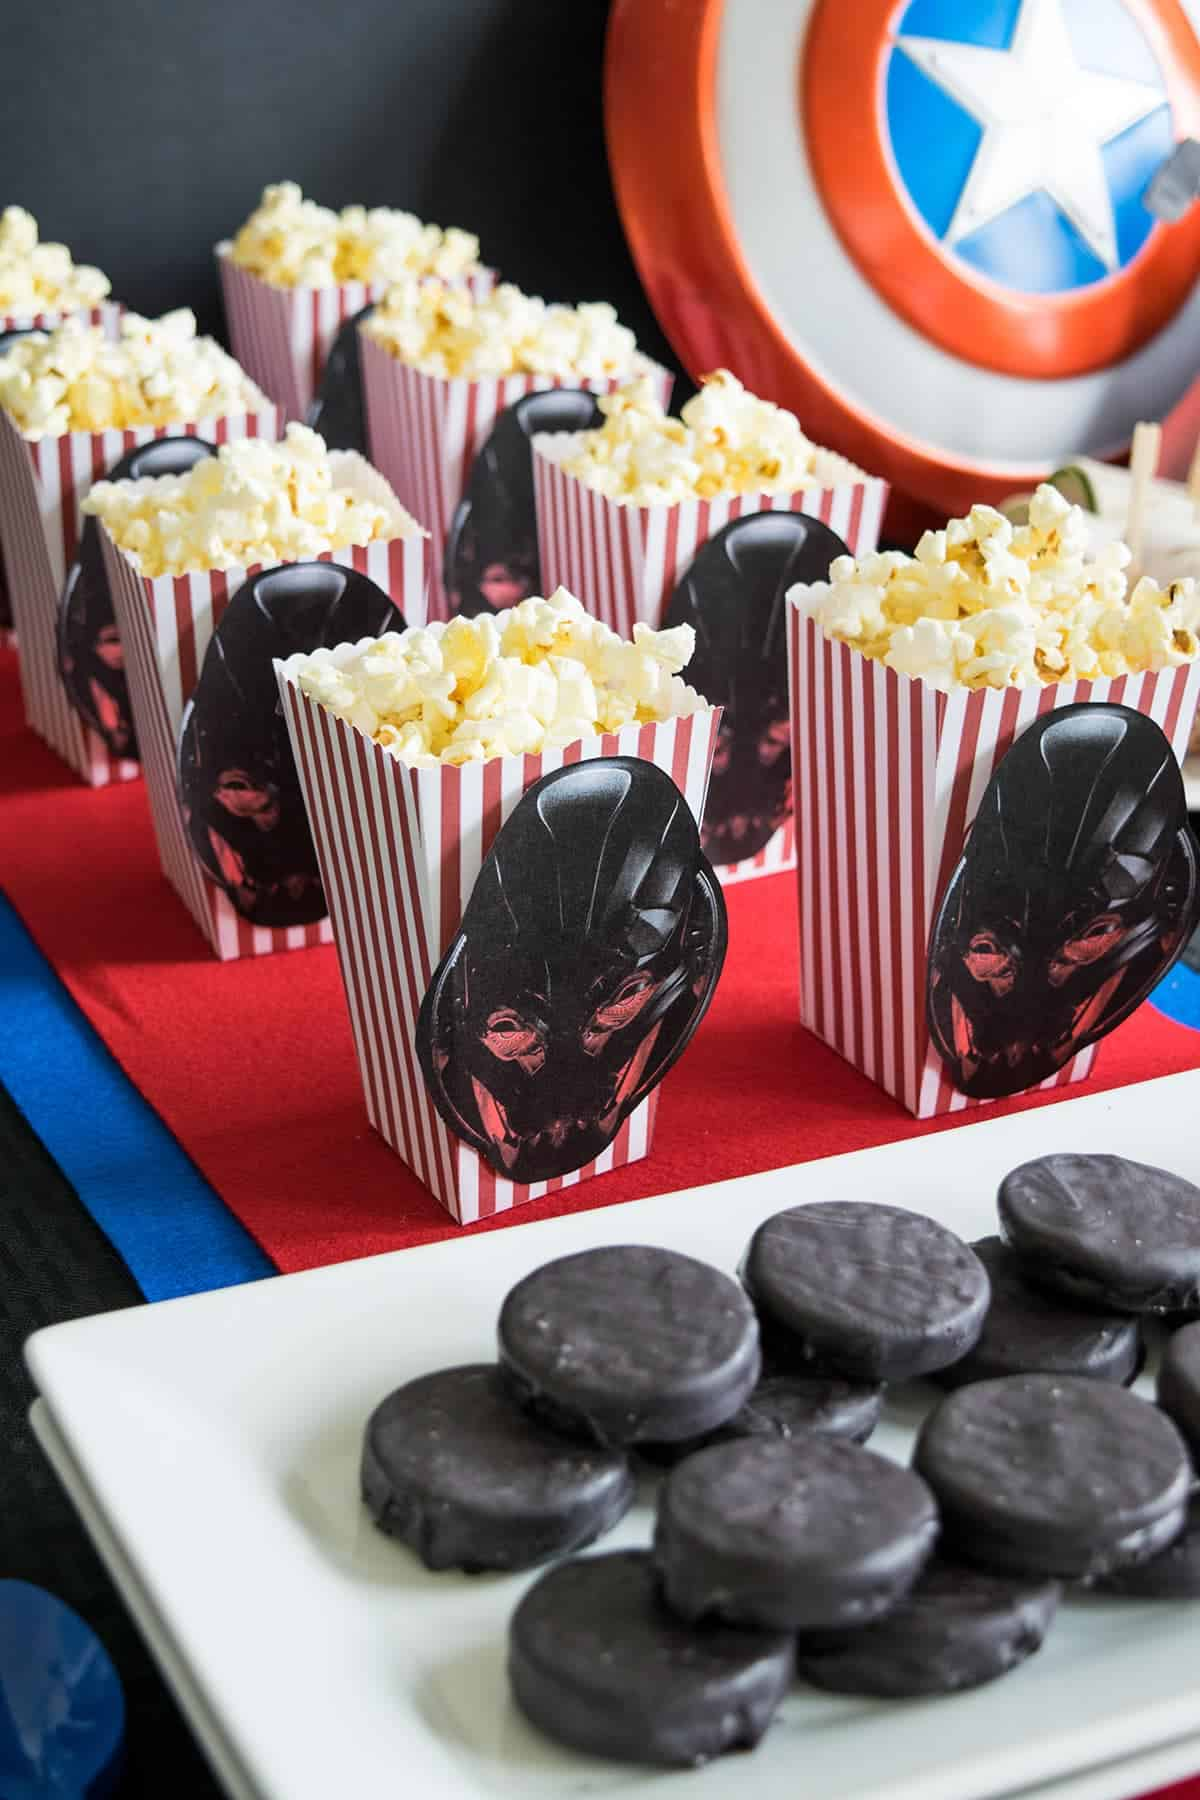 Avengers themed party table with white tray of dipped Oreos, popcorn boxes filled with chips and Ultron character cutouts on front.